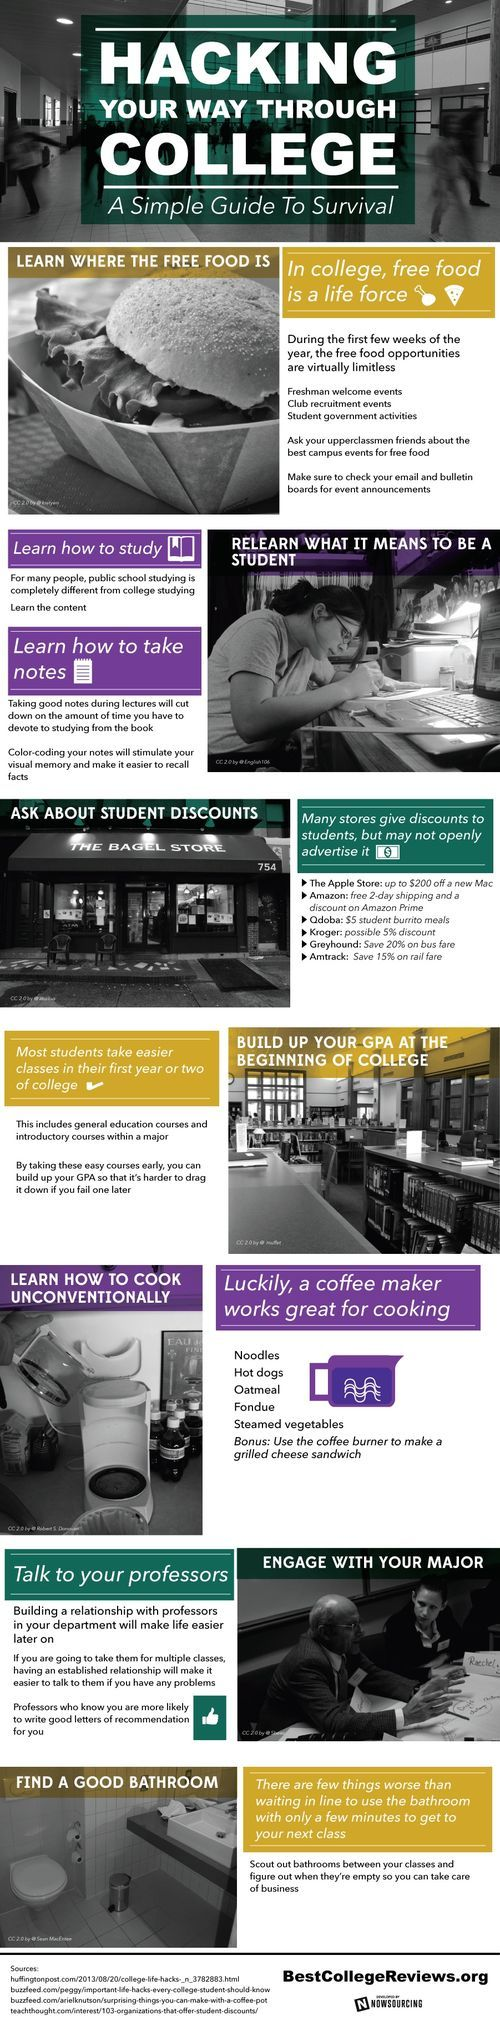 Ultimate college survival infographic | College Life | Snow College #snowreslife